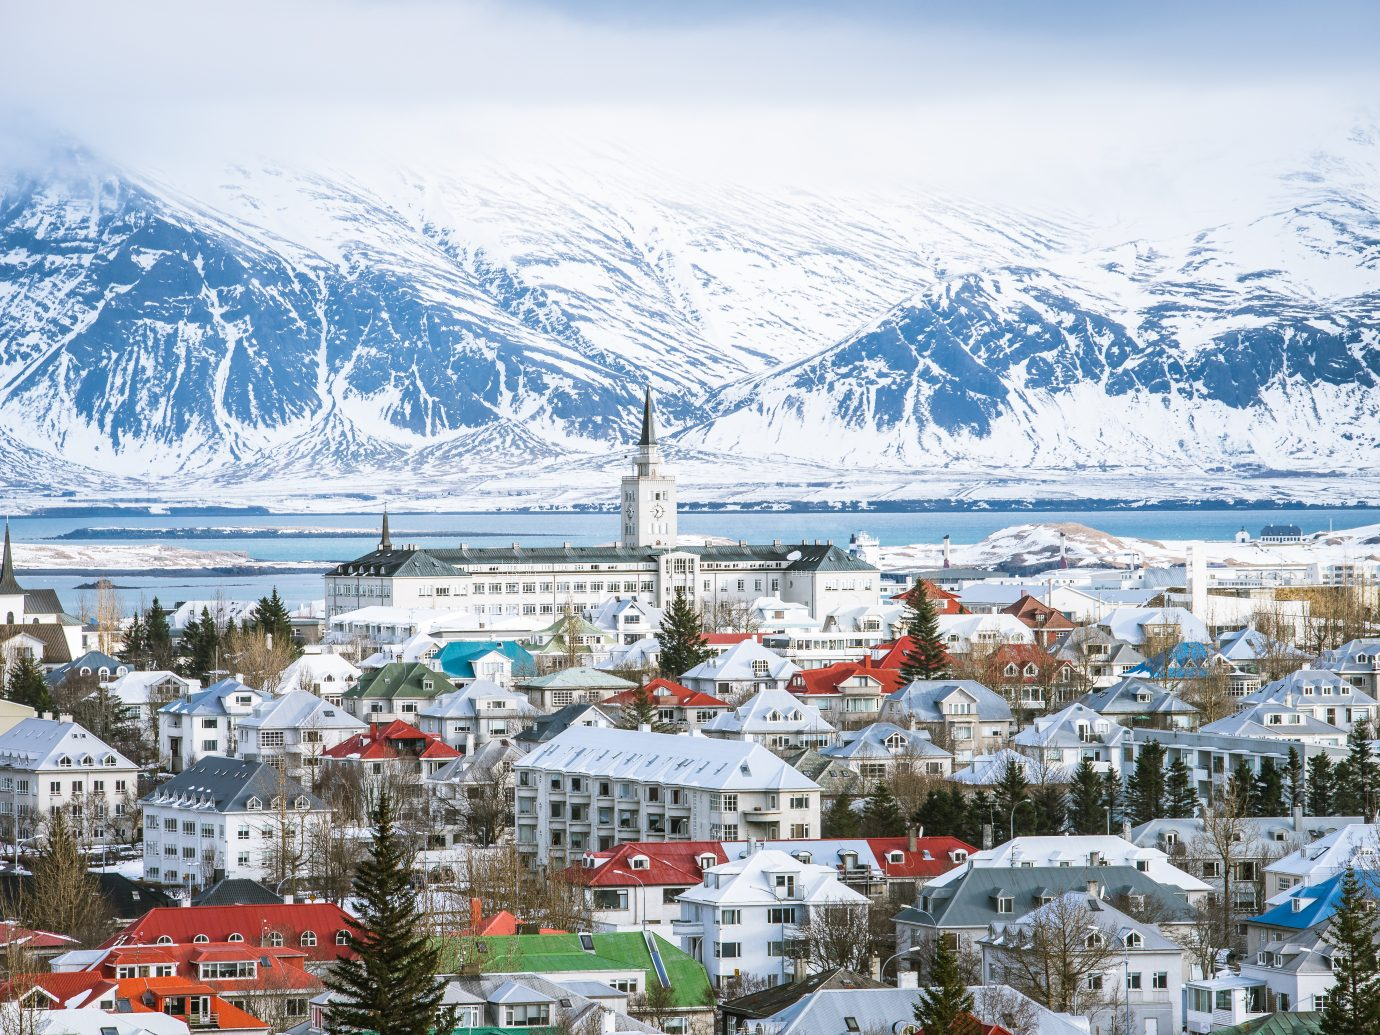 Reykjavik iceland in winter view from above